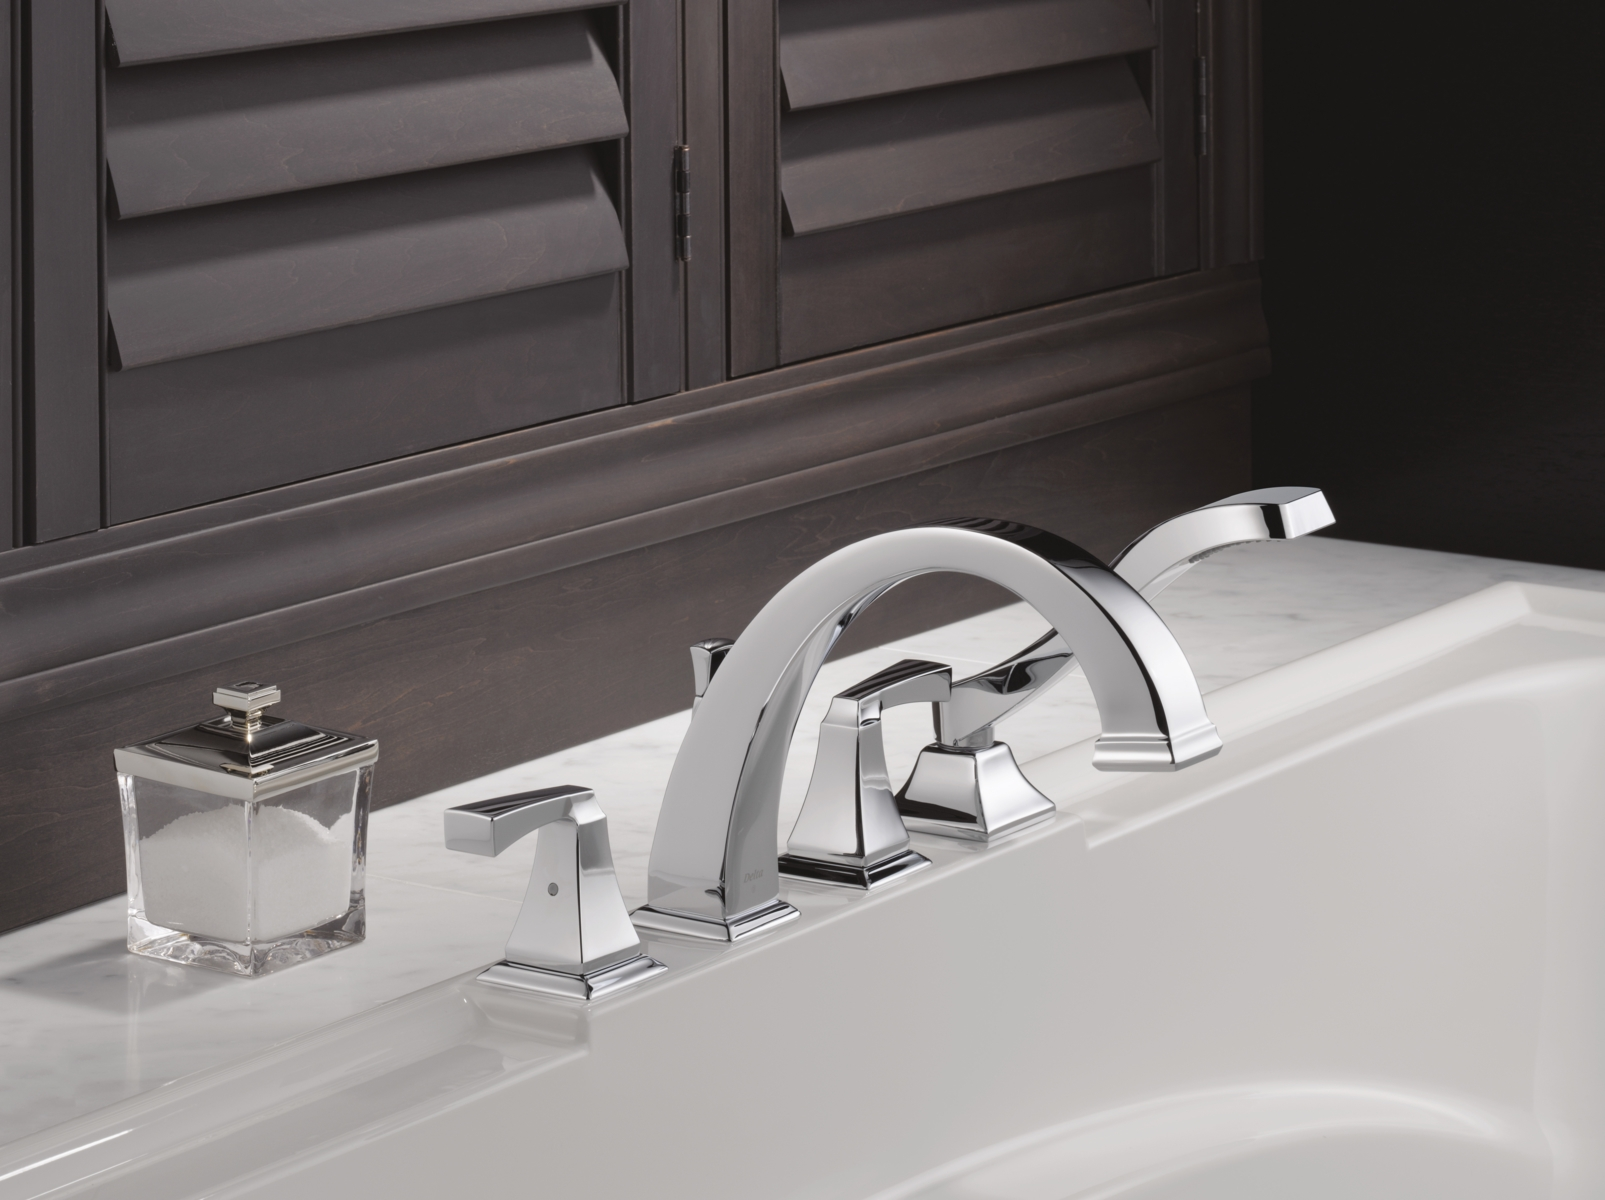 Ideas, delta faucet spout extension delta faucet spout extension dryden bathroom collection 1605 x 1200  .